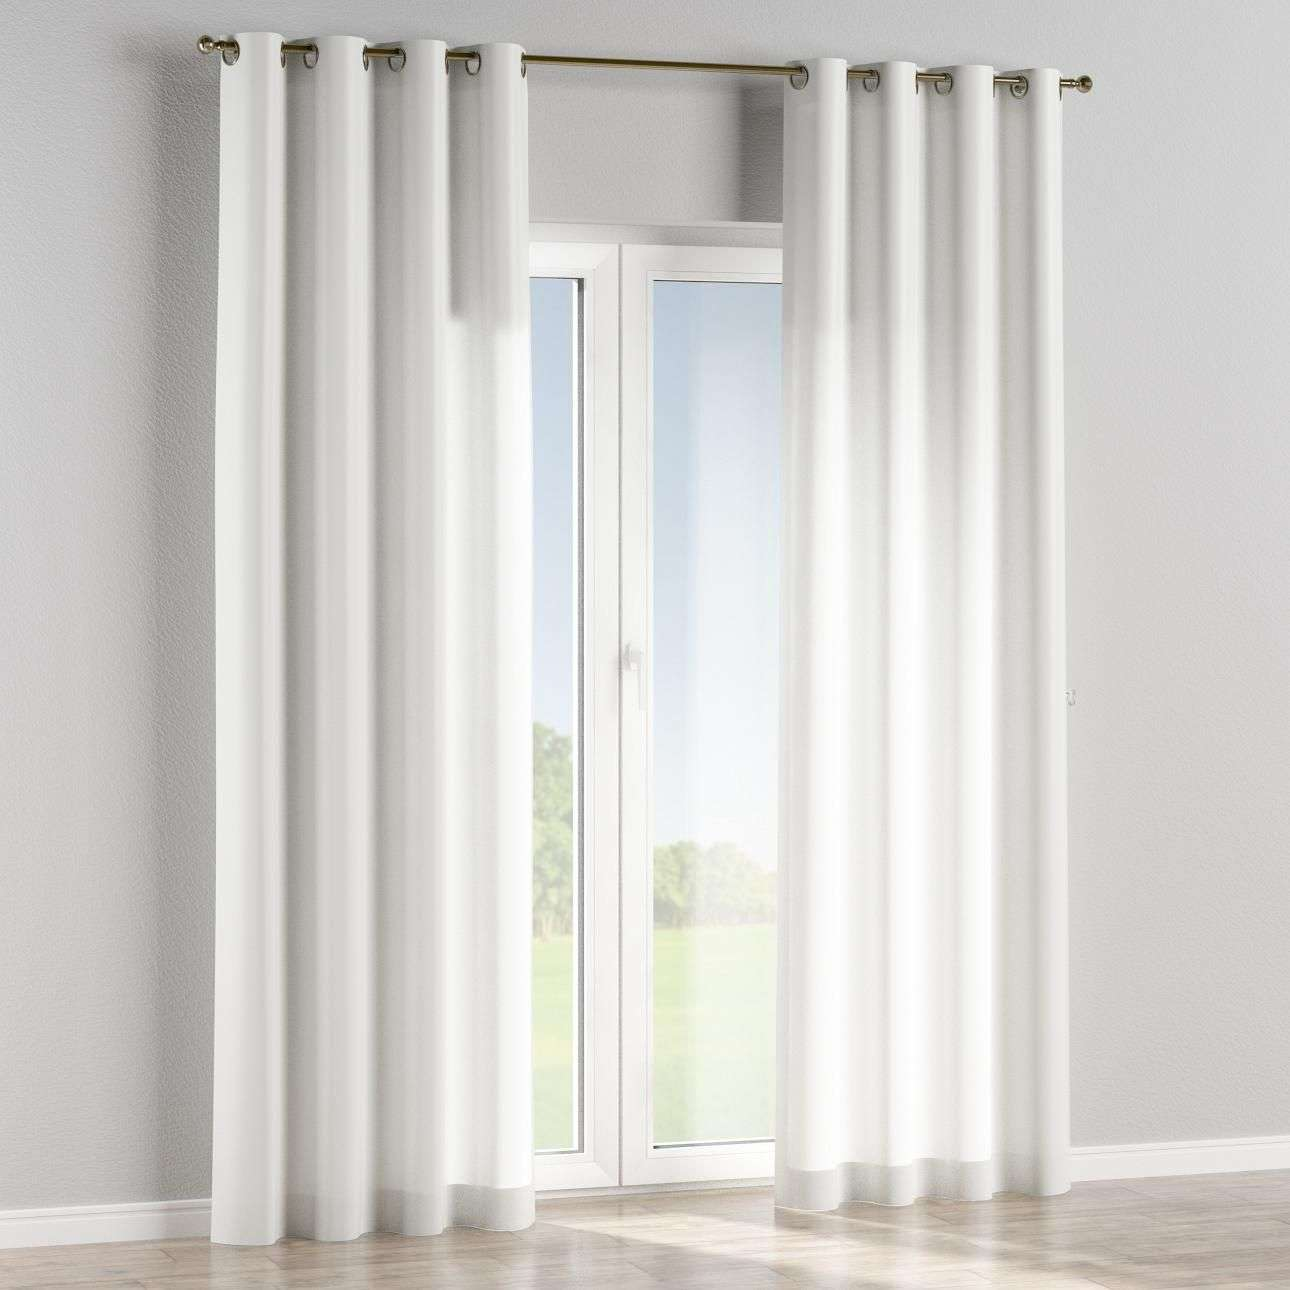 Eyelet curtains in collection Mirella, fabric: 141-12